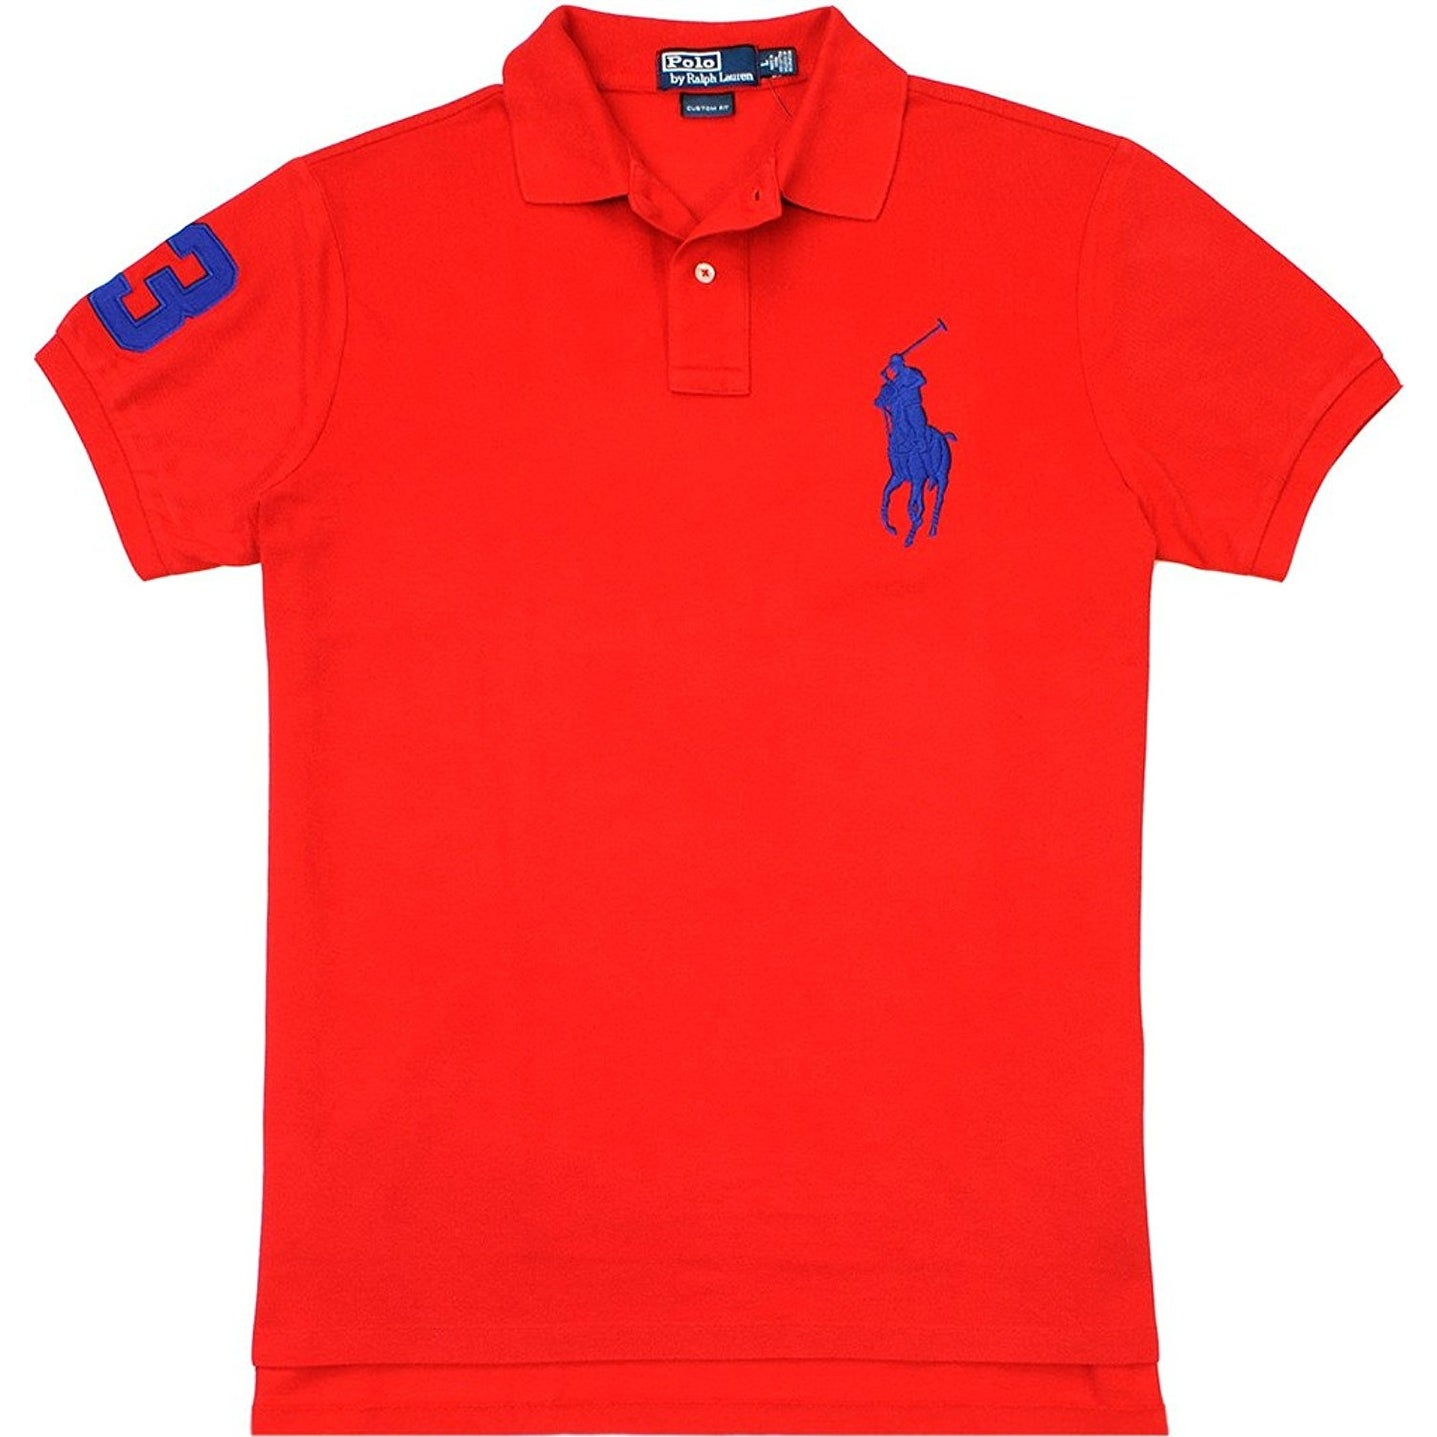 Polo Ralph Lauren Men s Custom-Fit Big Pony Mesh Polo Red Size Extra Large 49c19f7ba4f1b